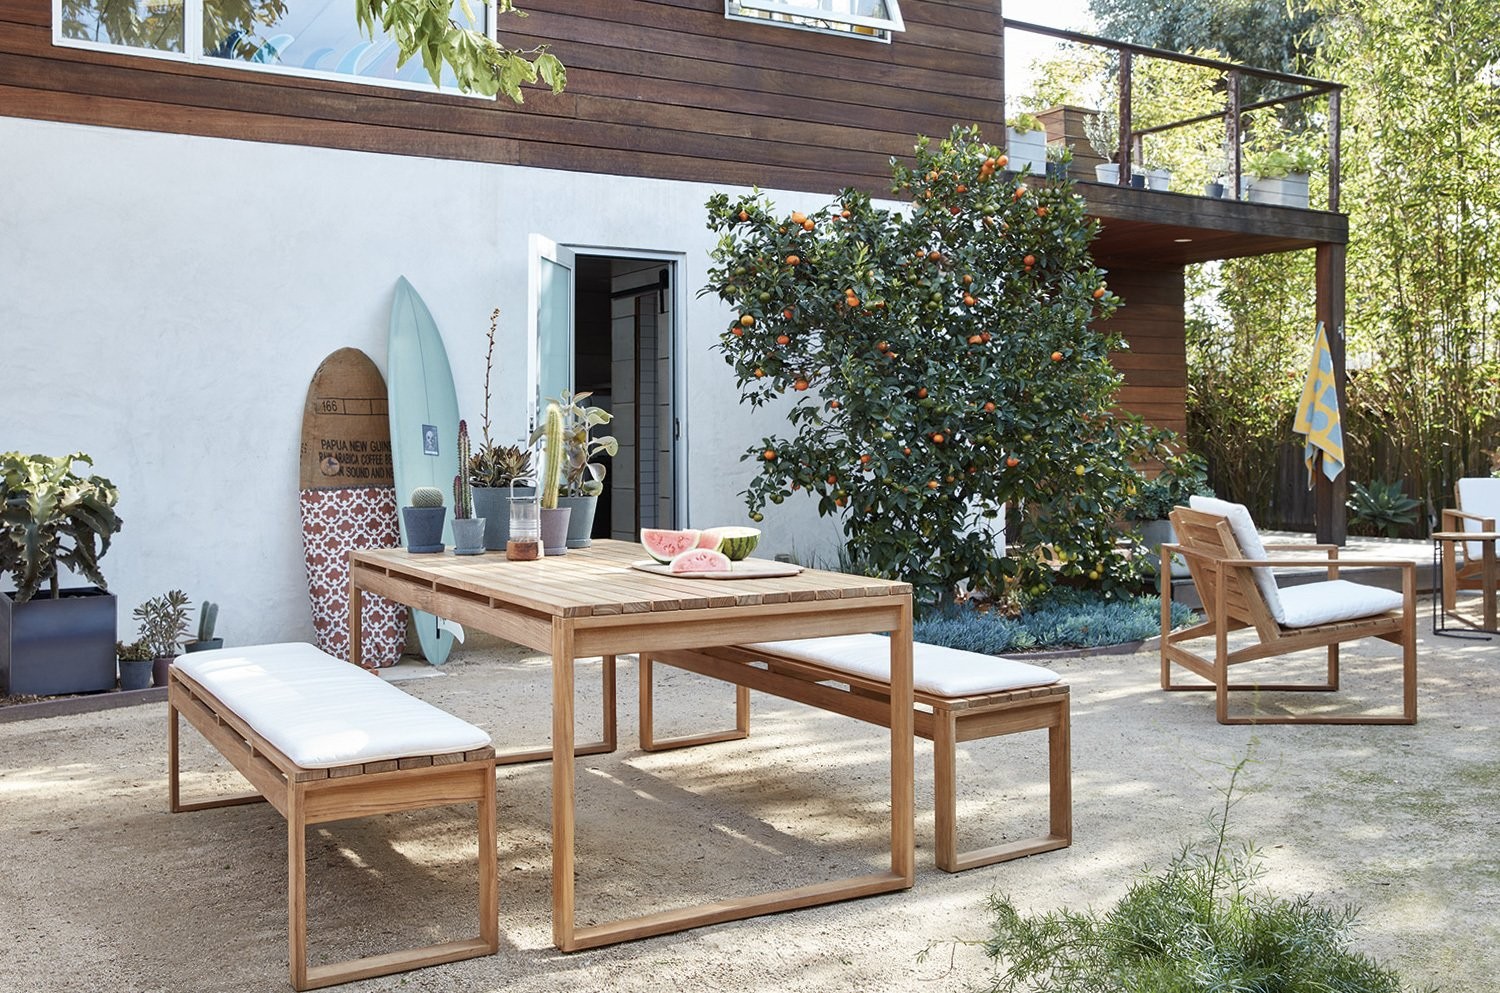 """The space between the studio and main house is now a large patio with several seating areas. A fence encloses the space and provides additional privacy along with lush plantings.  Photo 10 of 17 in The """"Surf Shacks"""" Author Lists His Venice Bungalow and Backyard Guesthouse for $1.6M"""